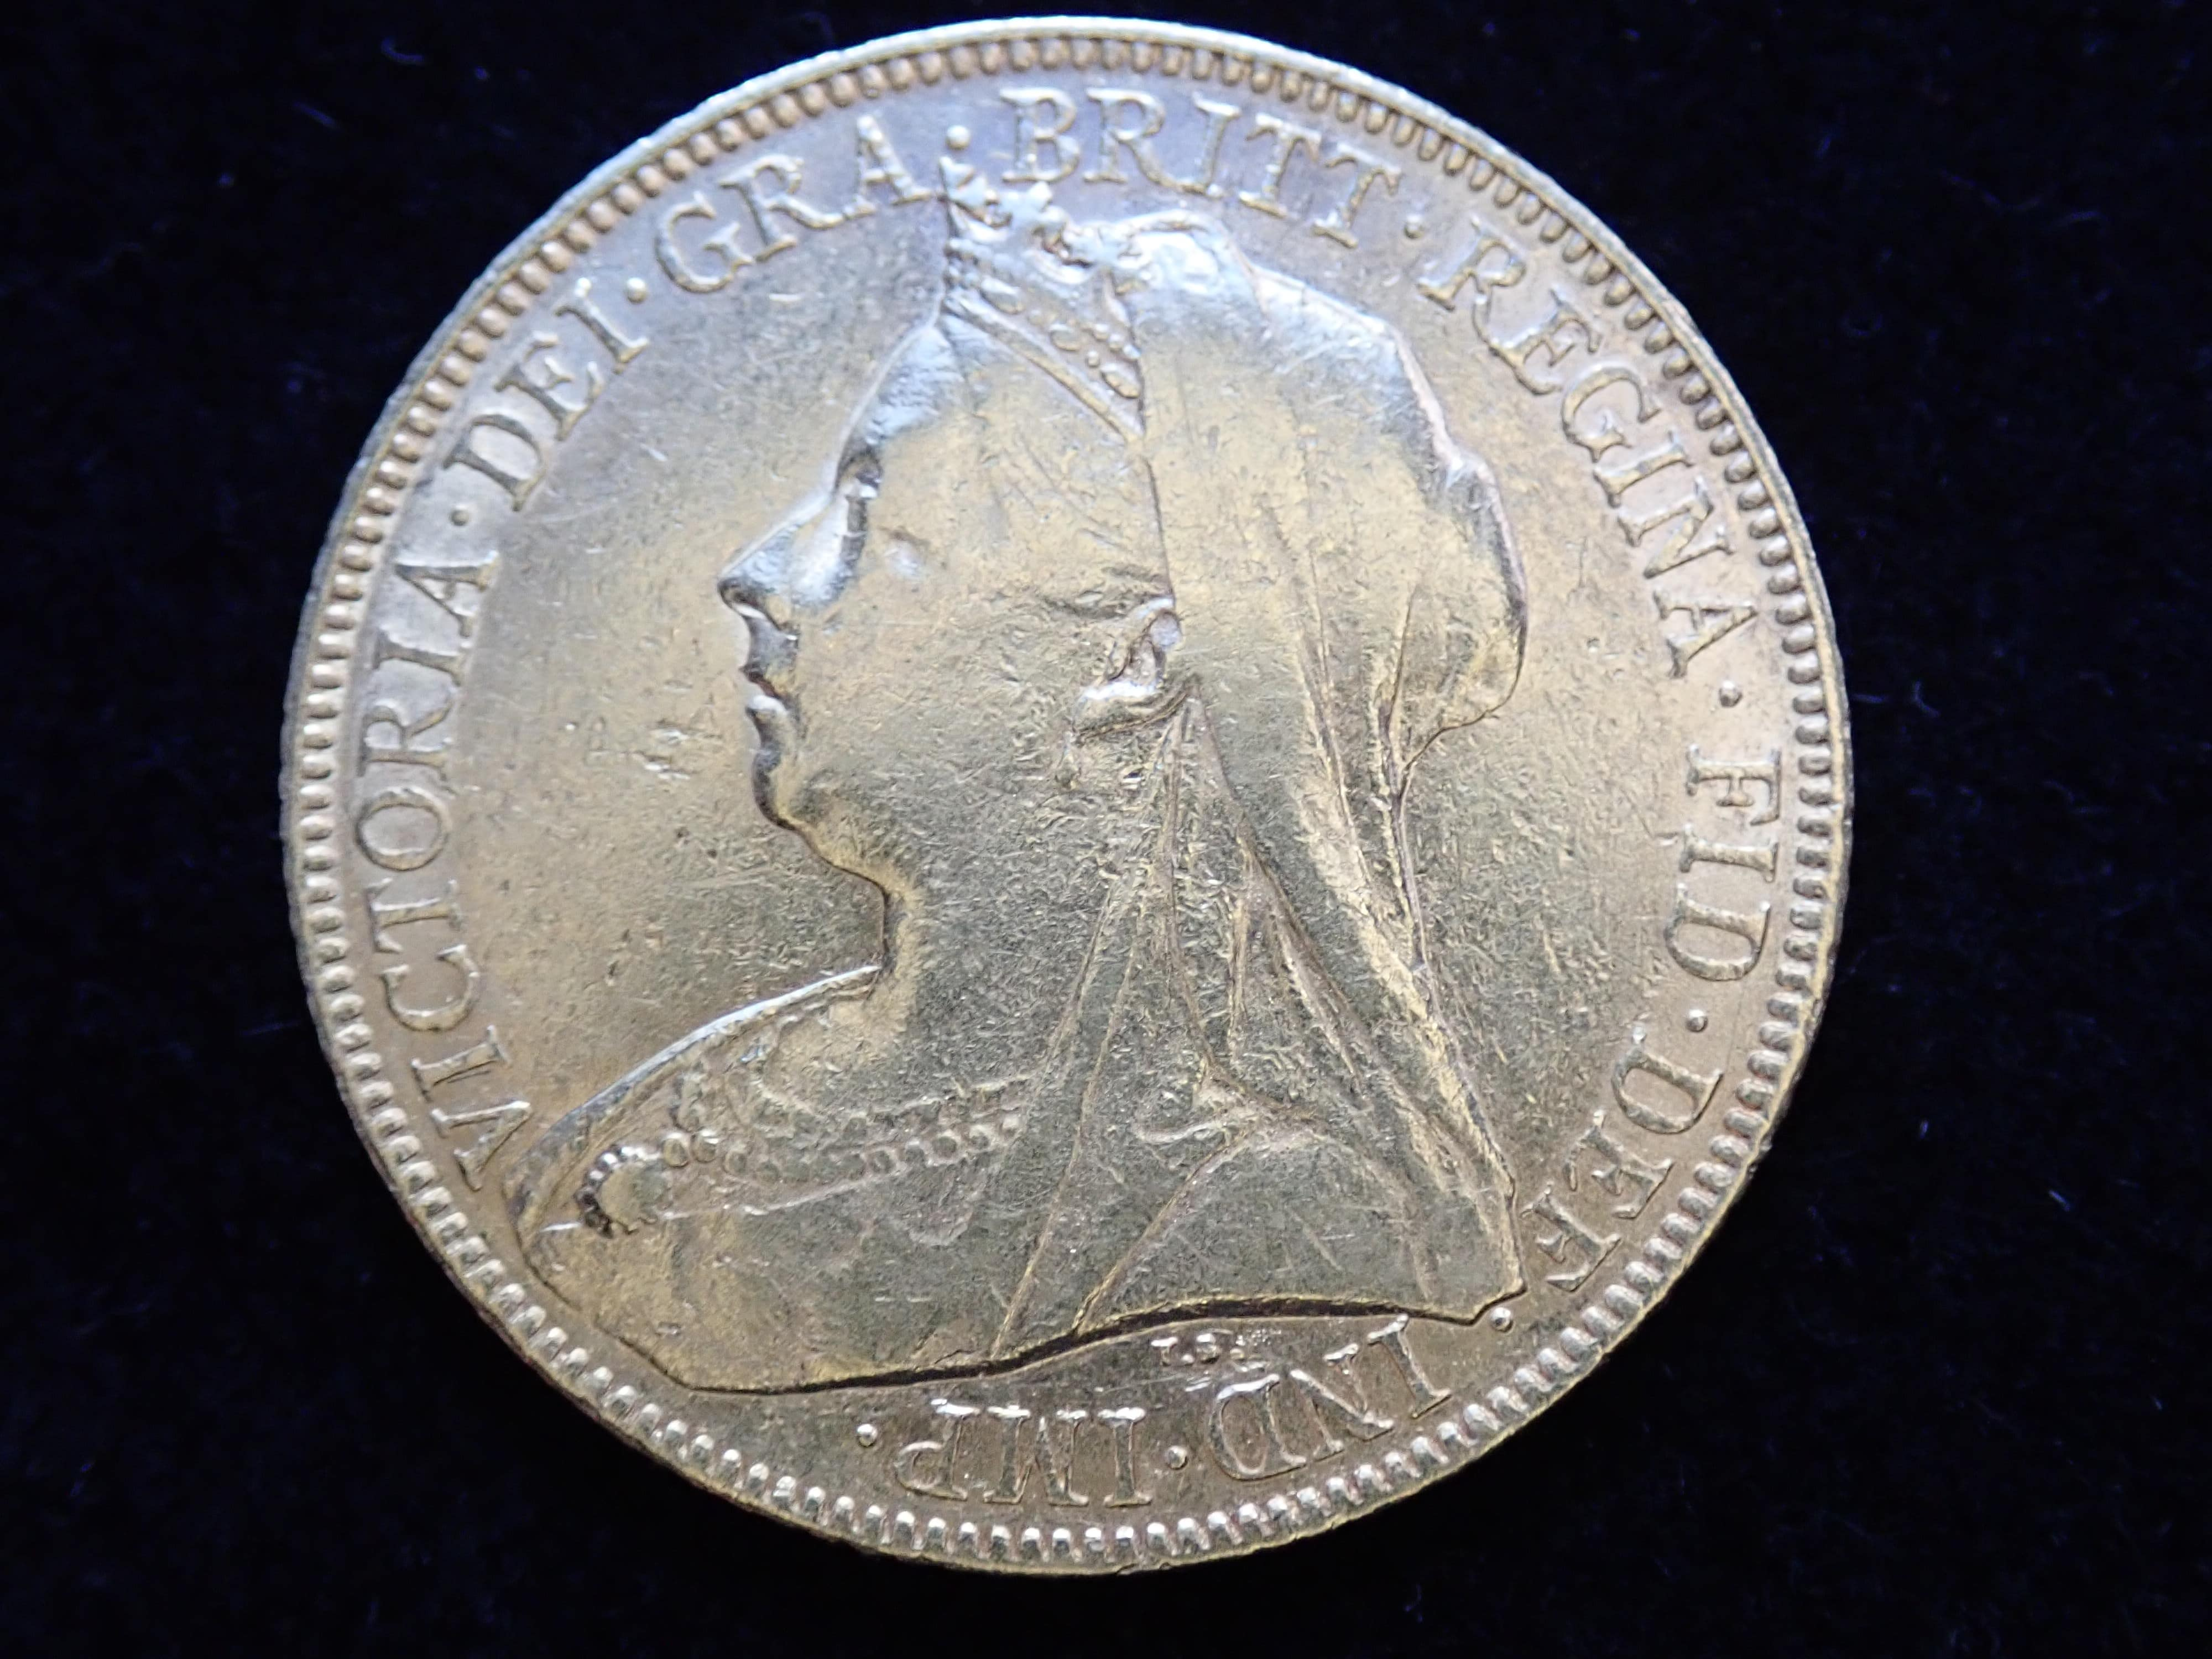 AA000803 - 1900 Gold Full Sovereign Coin - Queen Victoria Old Head - London Mint #a355